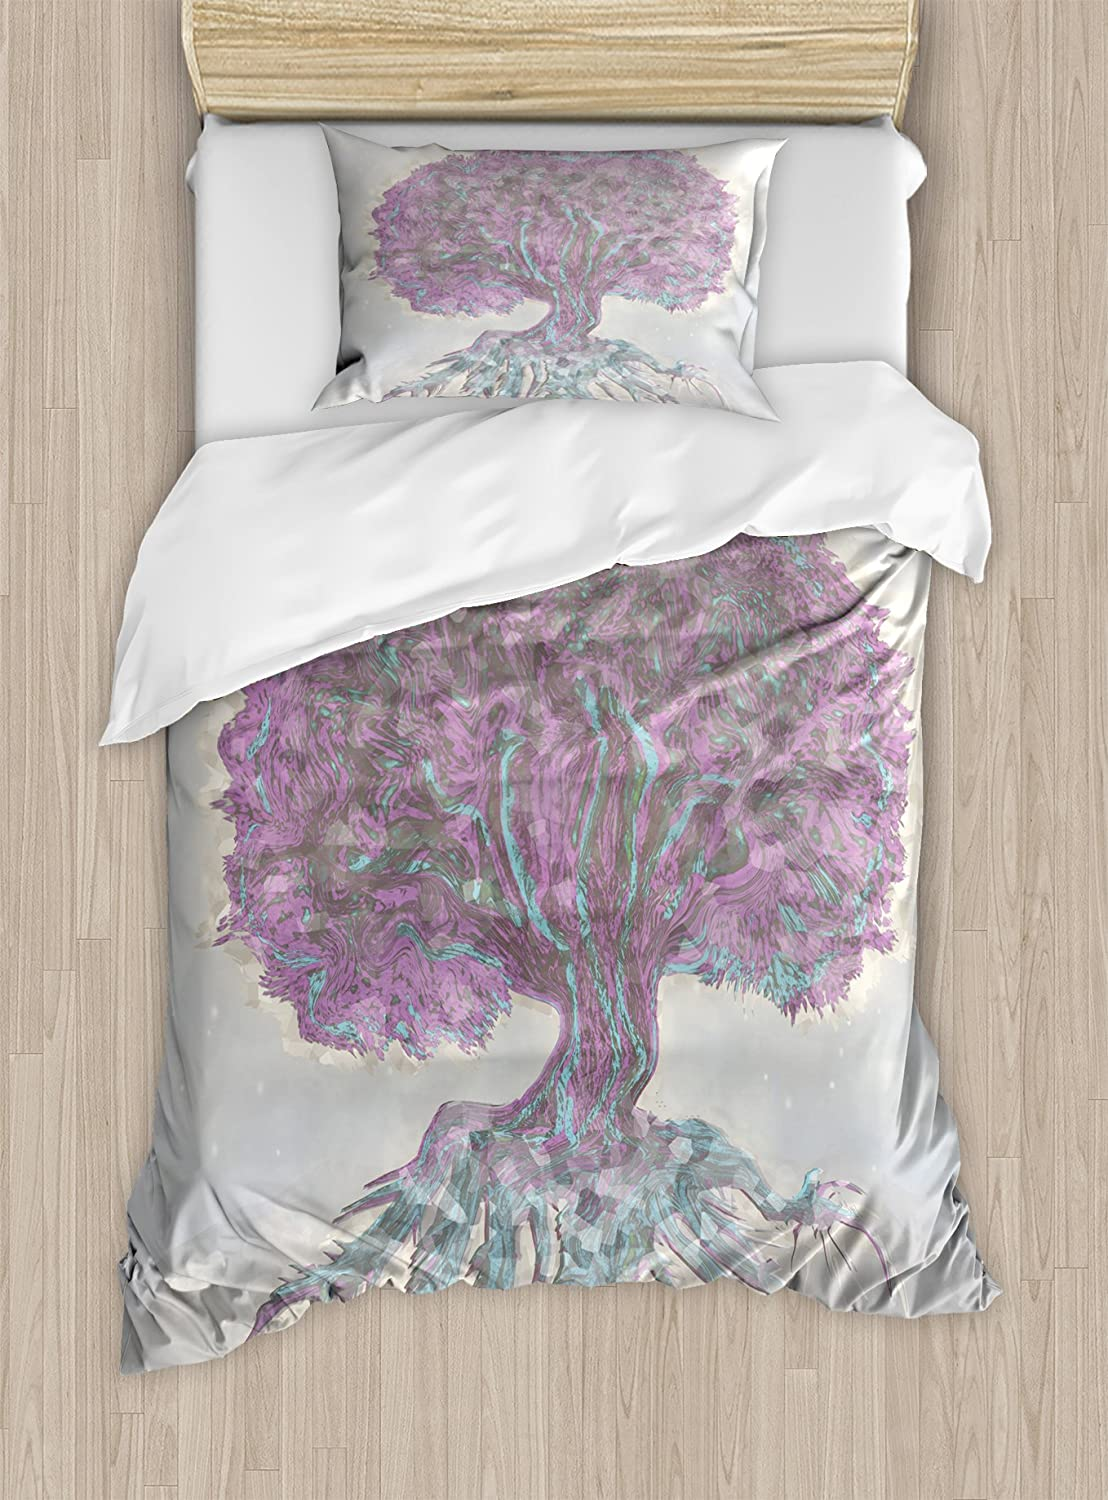 B07559YMP3 Ambesonne Tree of Life Duvet Cover Set, Watercolors Style Print of Old Plant with Bokeh Design Majestic Roots Nature, Decorative 2 Piece Bedding Set with 1 Pillow Sham, Twin Size, Grey Purple 81DecFy0x6L.SL1500_